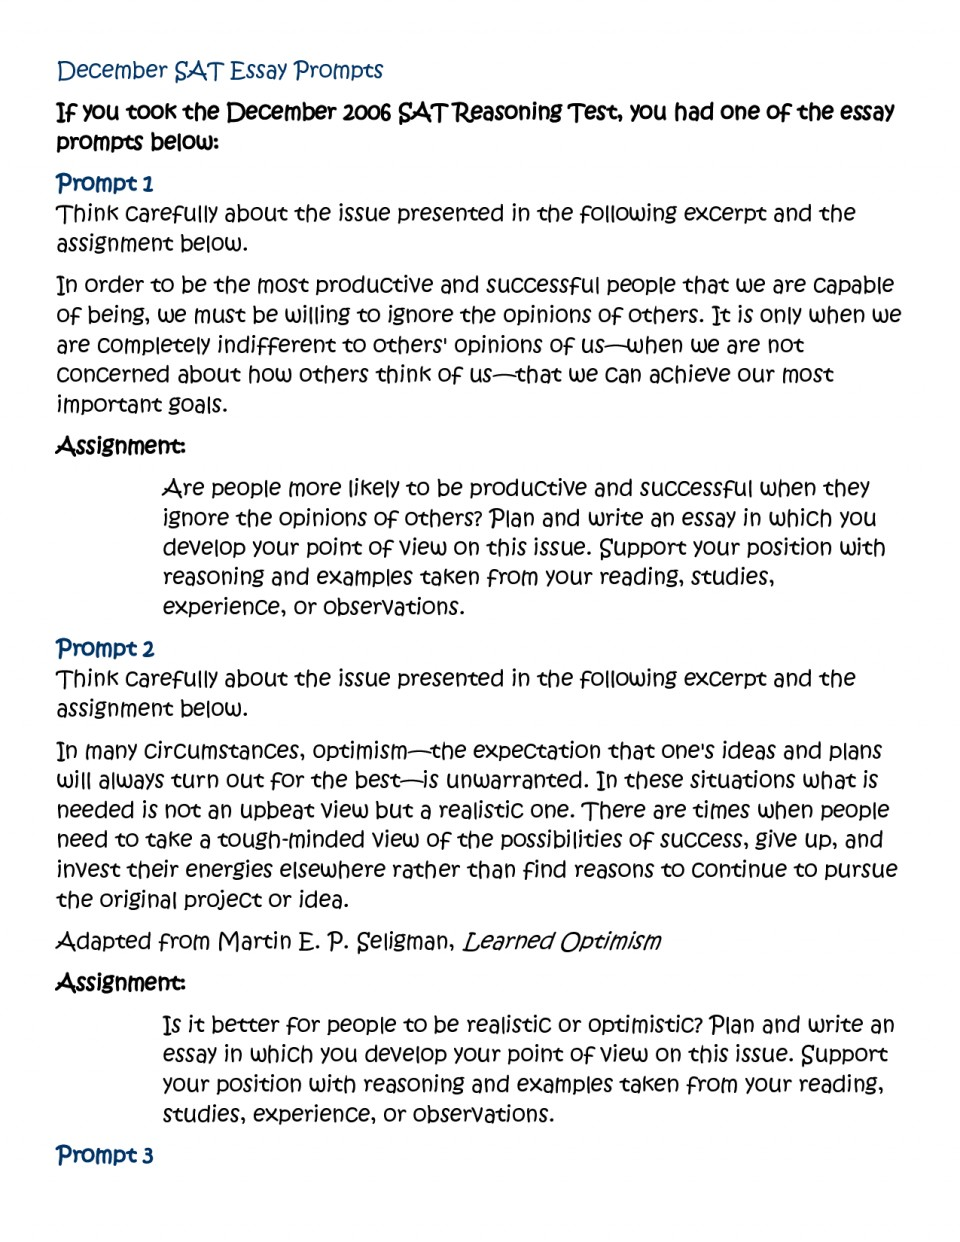 006 Essay Example What Is The Sat Ideas Of Questions Also Worksheet Grassmtnusa Com How To Write Faster And Exa Pdf Prepscholar Formula Examples Step By Breathtaking Score Out 24 Old 2017 960